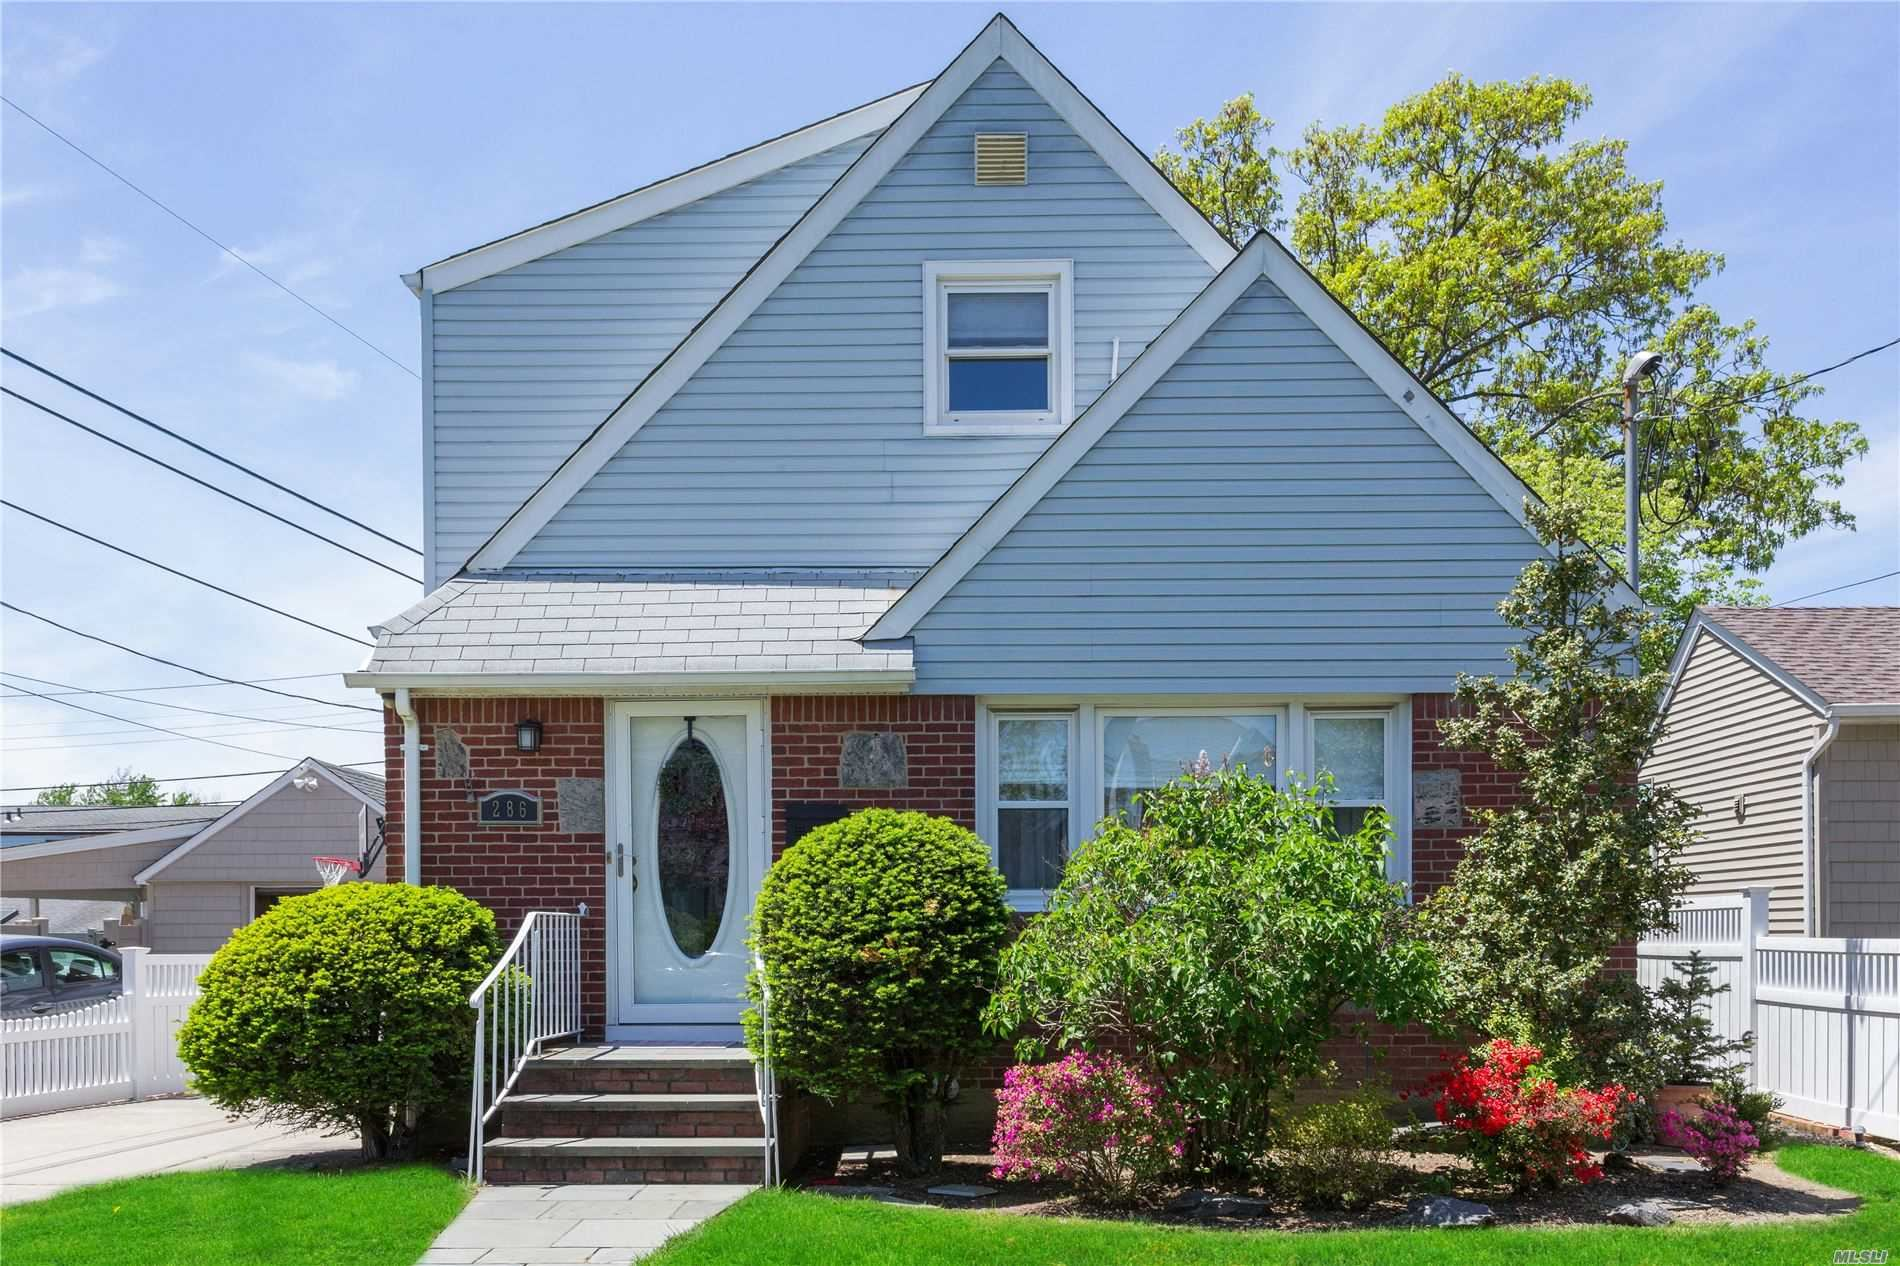 286 Commonwealth St, Franklin Square, NY 11010 - MLS#: 3216907